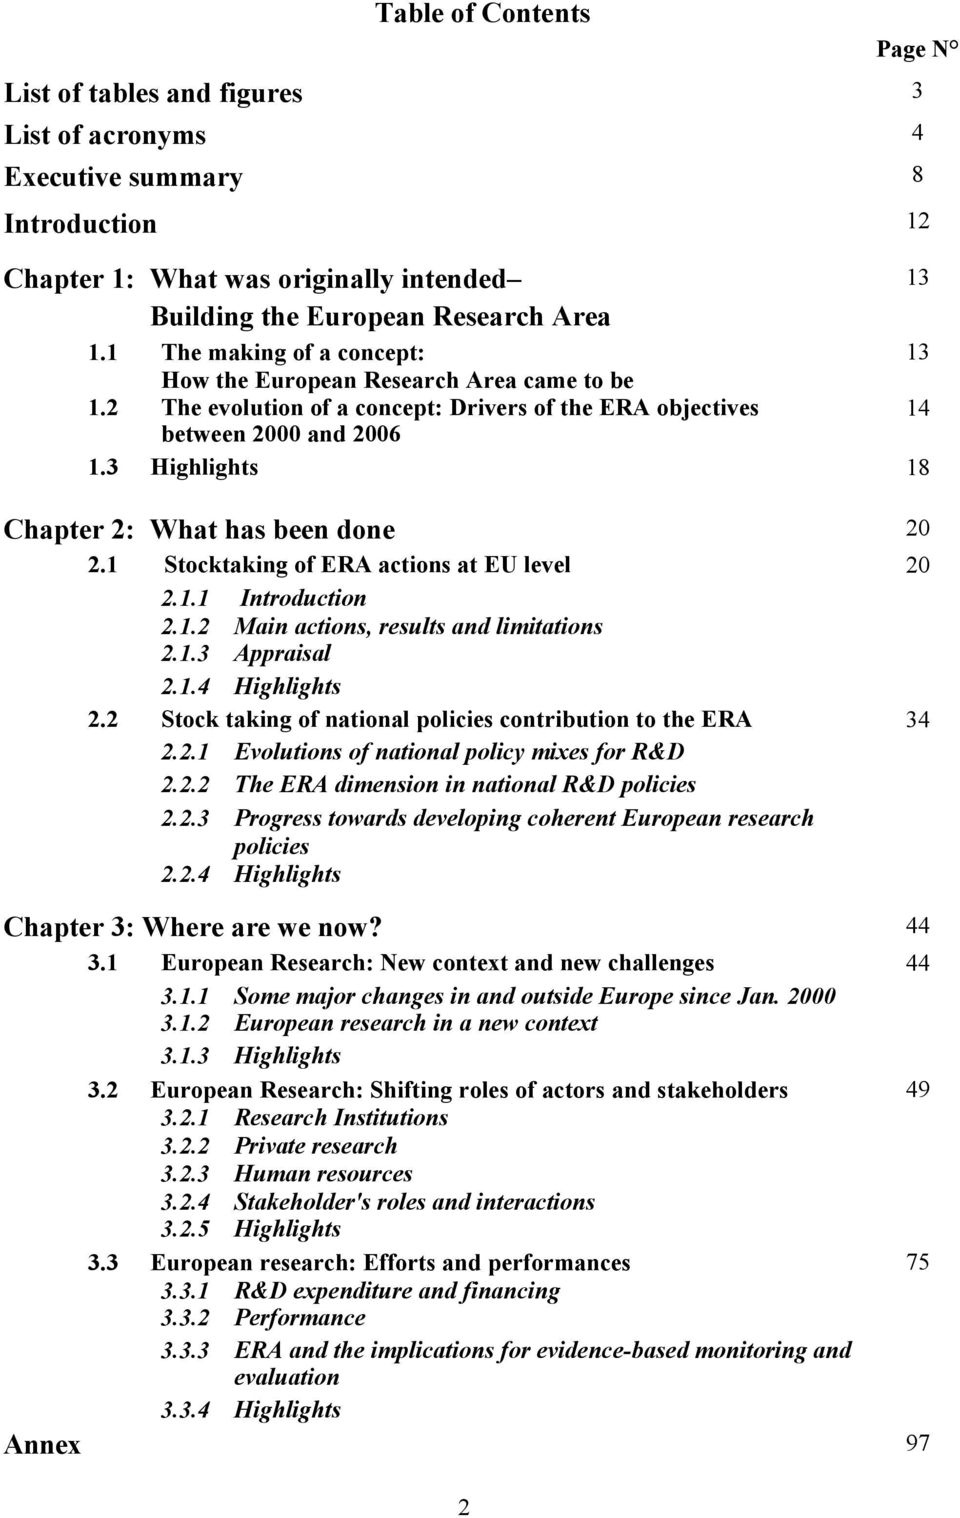 3 Highlights 18 Chapter 2: What has been done 20 2.1 Stocktaking of ERA actions at EU level 20 2.1.1 Introduction 2.1.2 Main actions, results and limitations 2.1.3 Appraisal 2.1.4 Highlights 2.